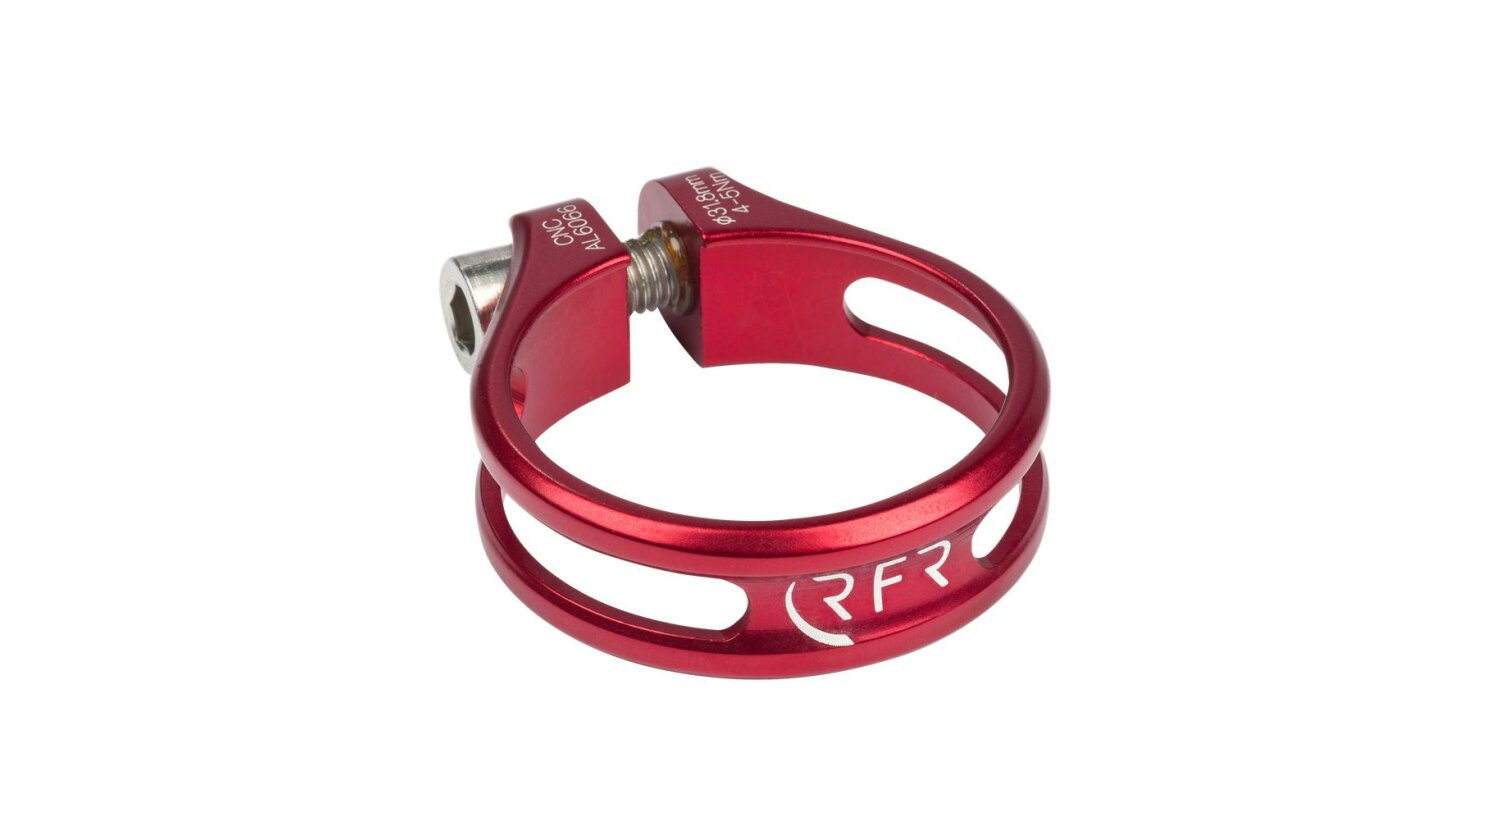 RFR Sattelklemme 31,8 mm Ultralight red